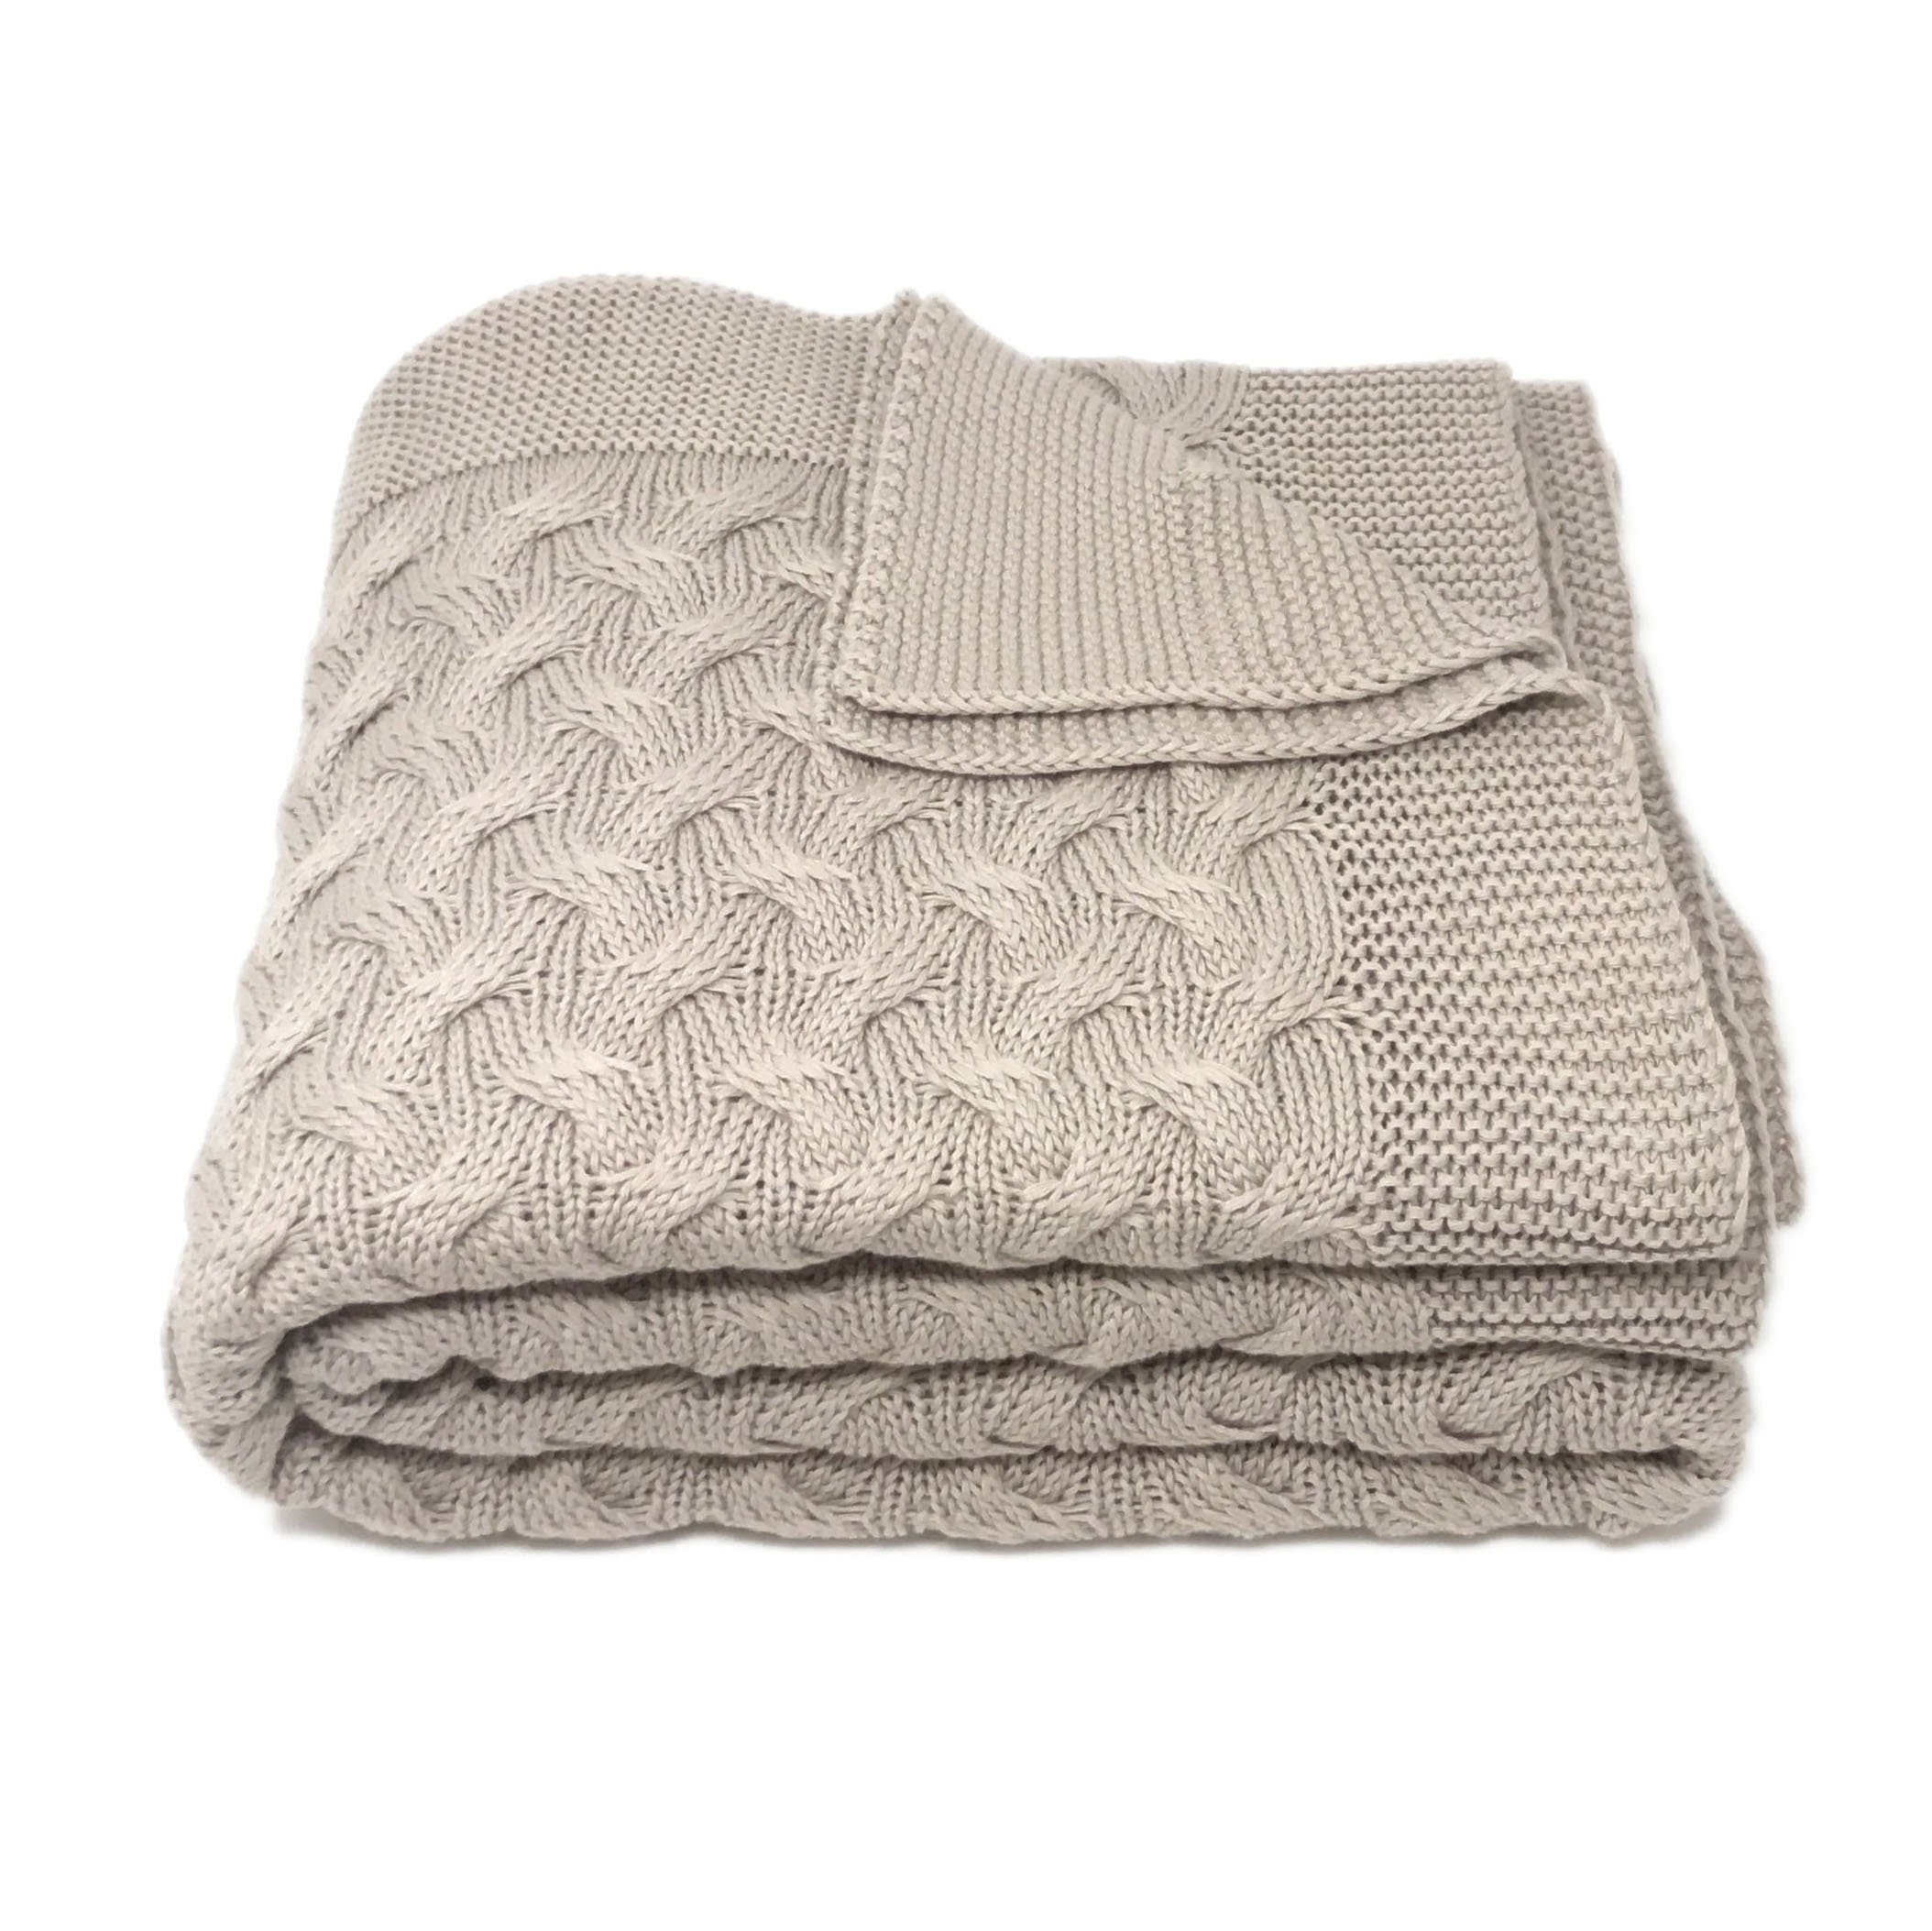 Soft 100% Cotton Throw Blanket, Knit Crochet Sweater Texture, for Couch Sofa Bed, Taupe Stone Neutral 51 x 67 Inch